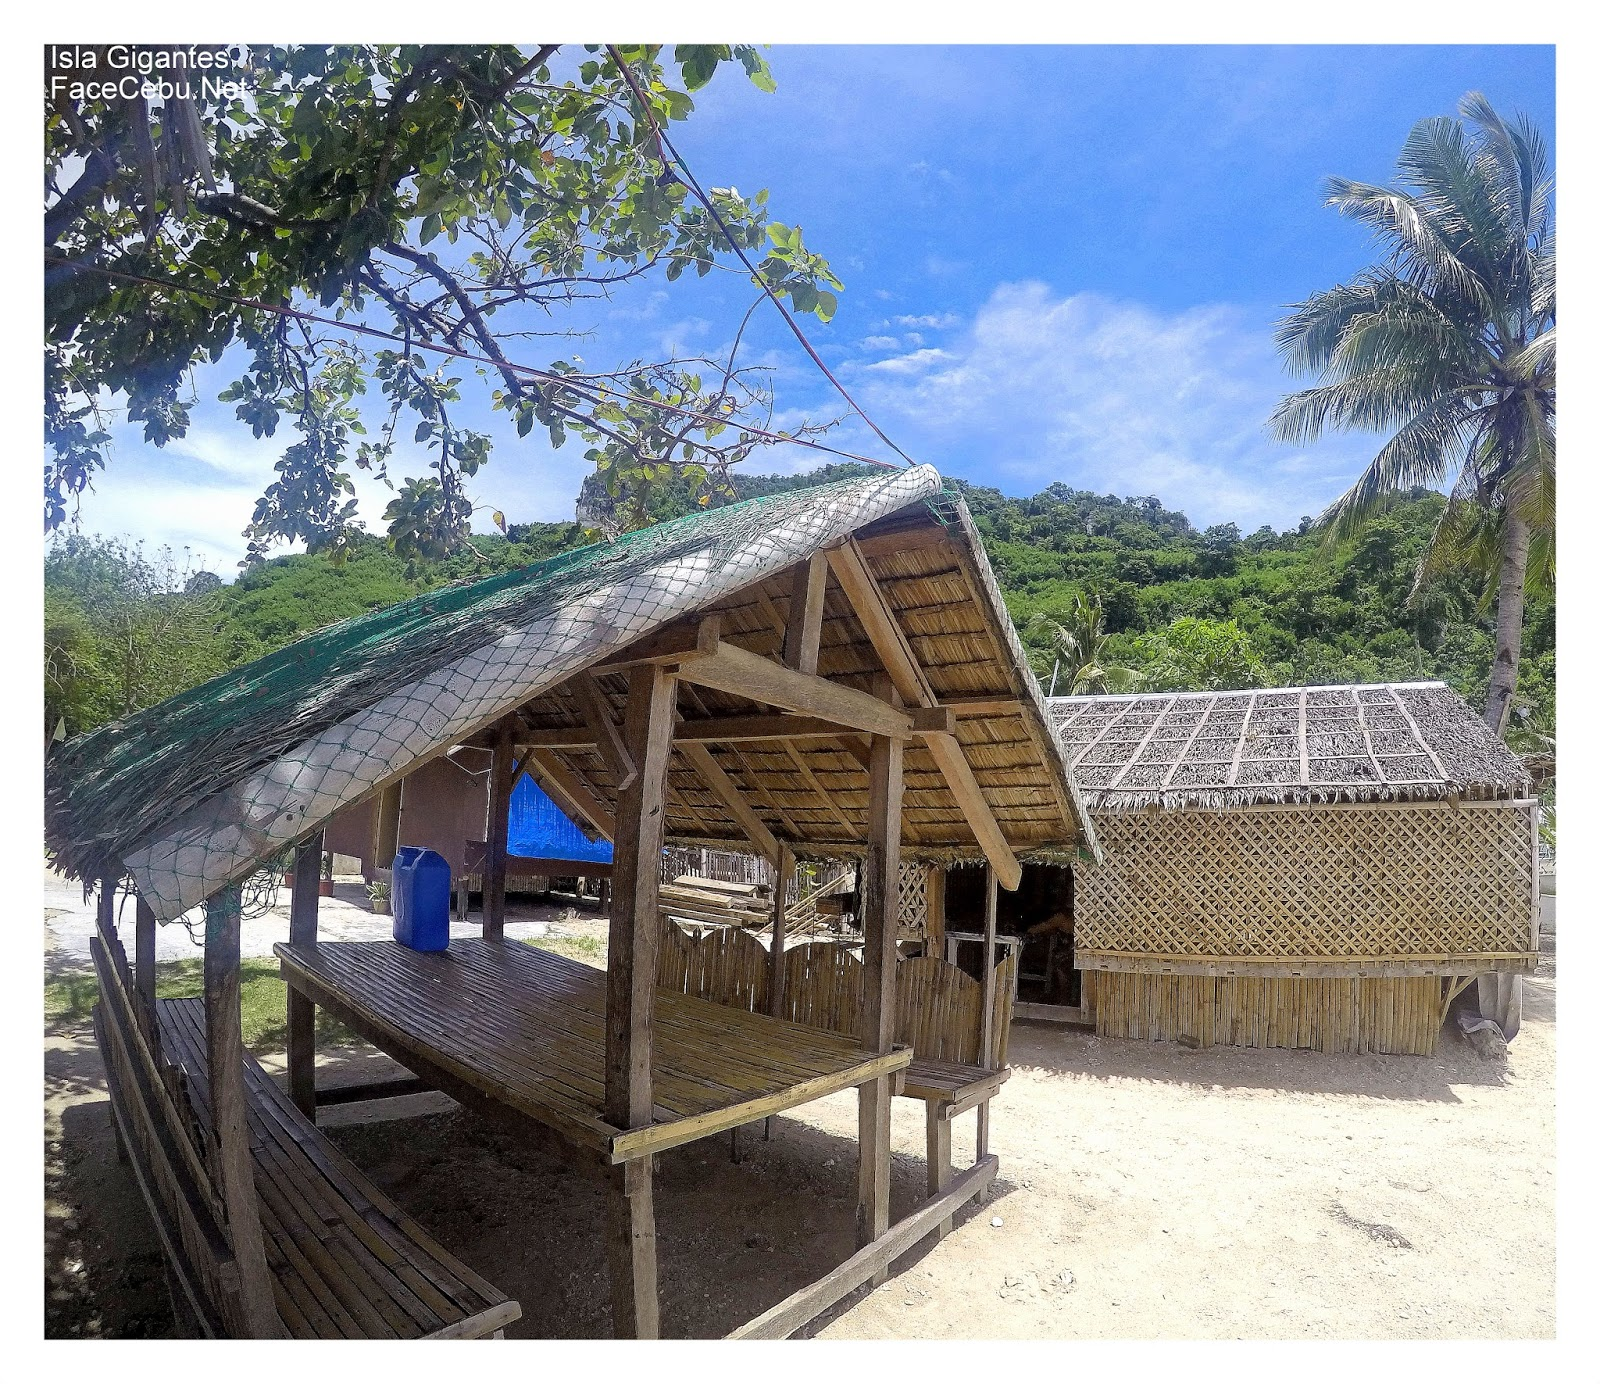 how to get there isla gigantes from cebu